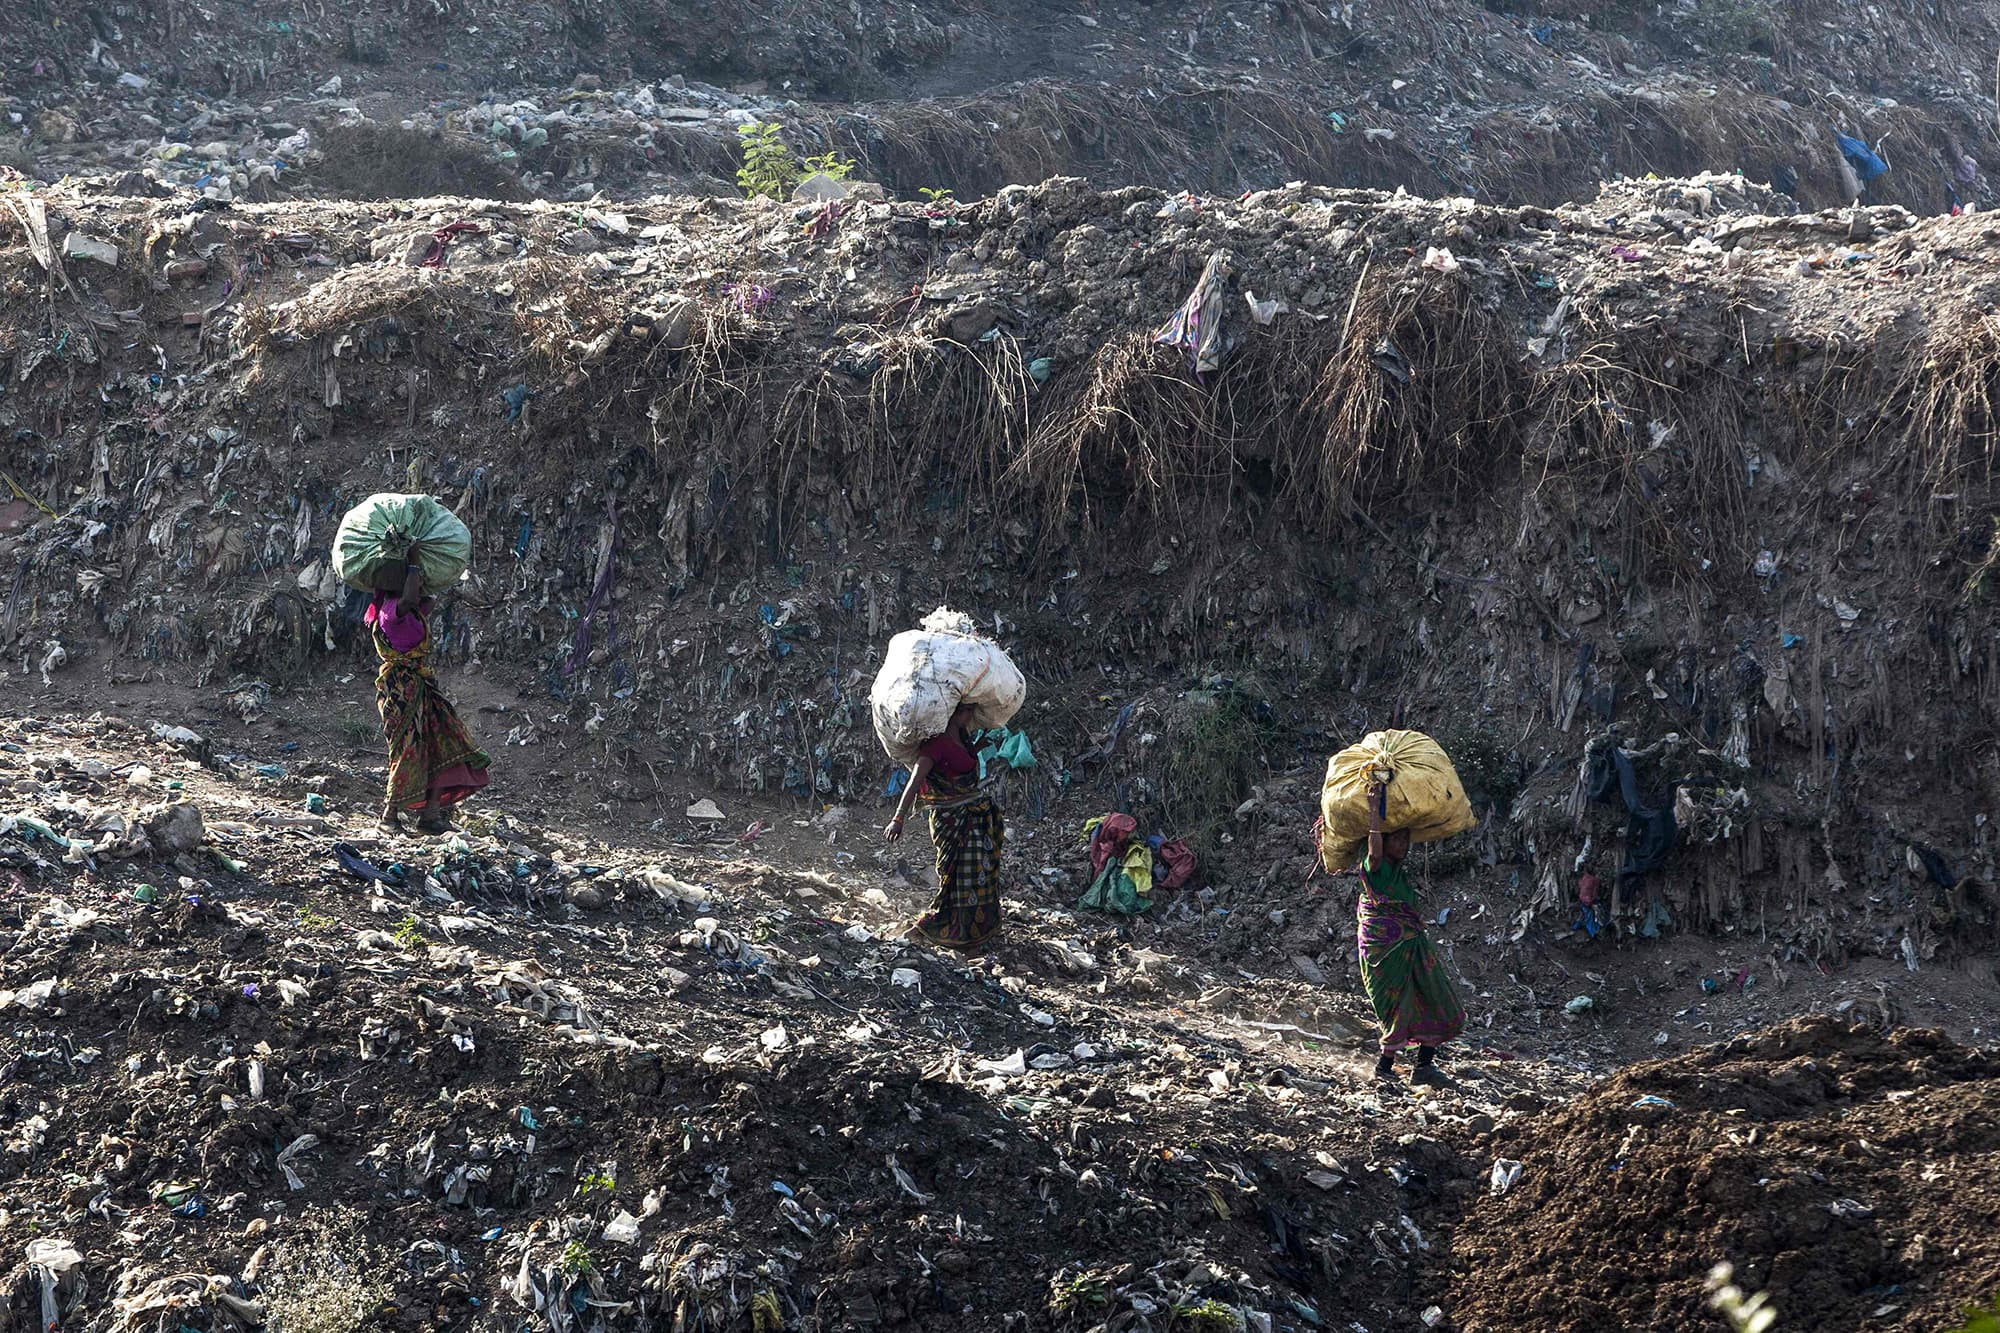 In this file photo taken on April 14, 2018, rag pickers carry sacks of sorted recyclable materials at the Ghazipur landfill site in the east of New Delhi. — AFP